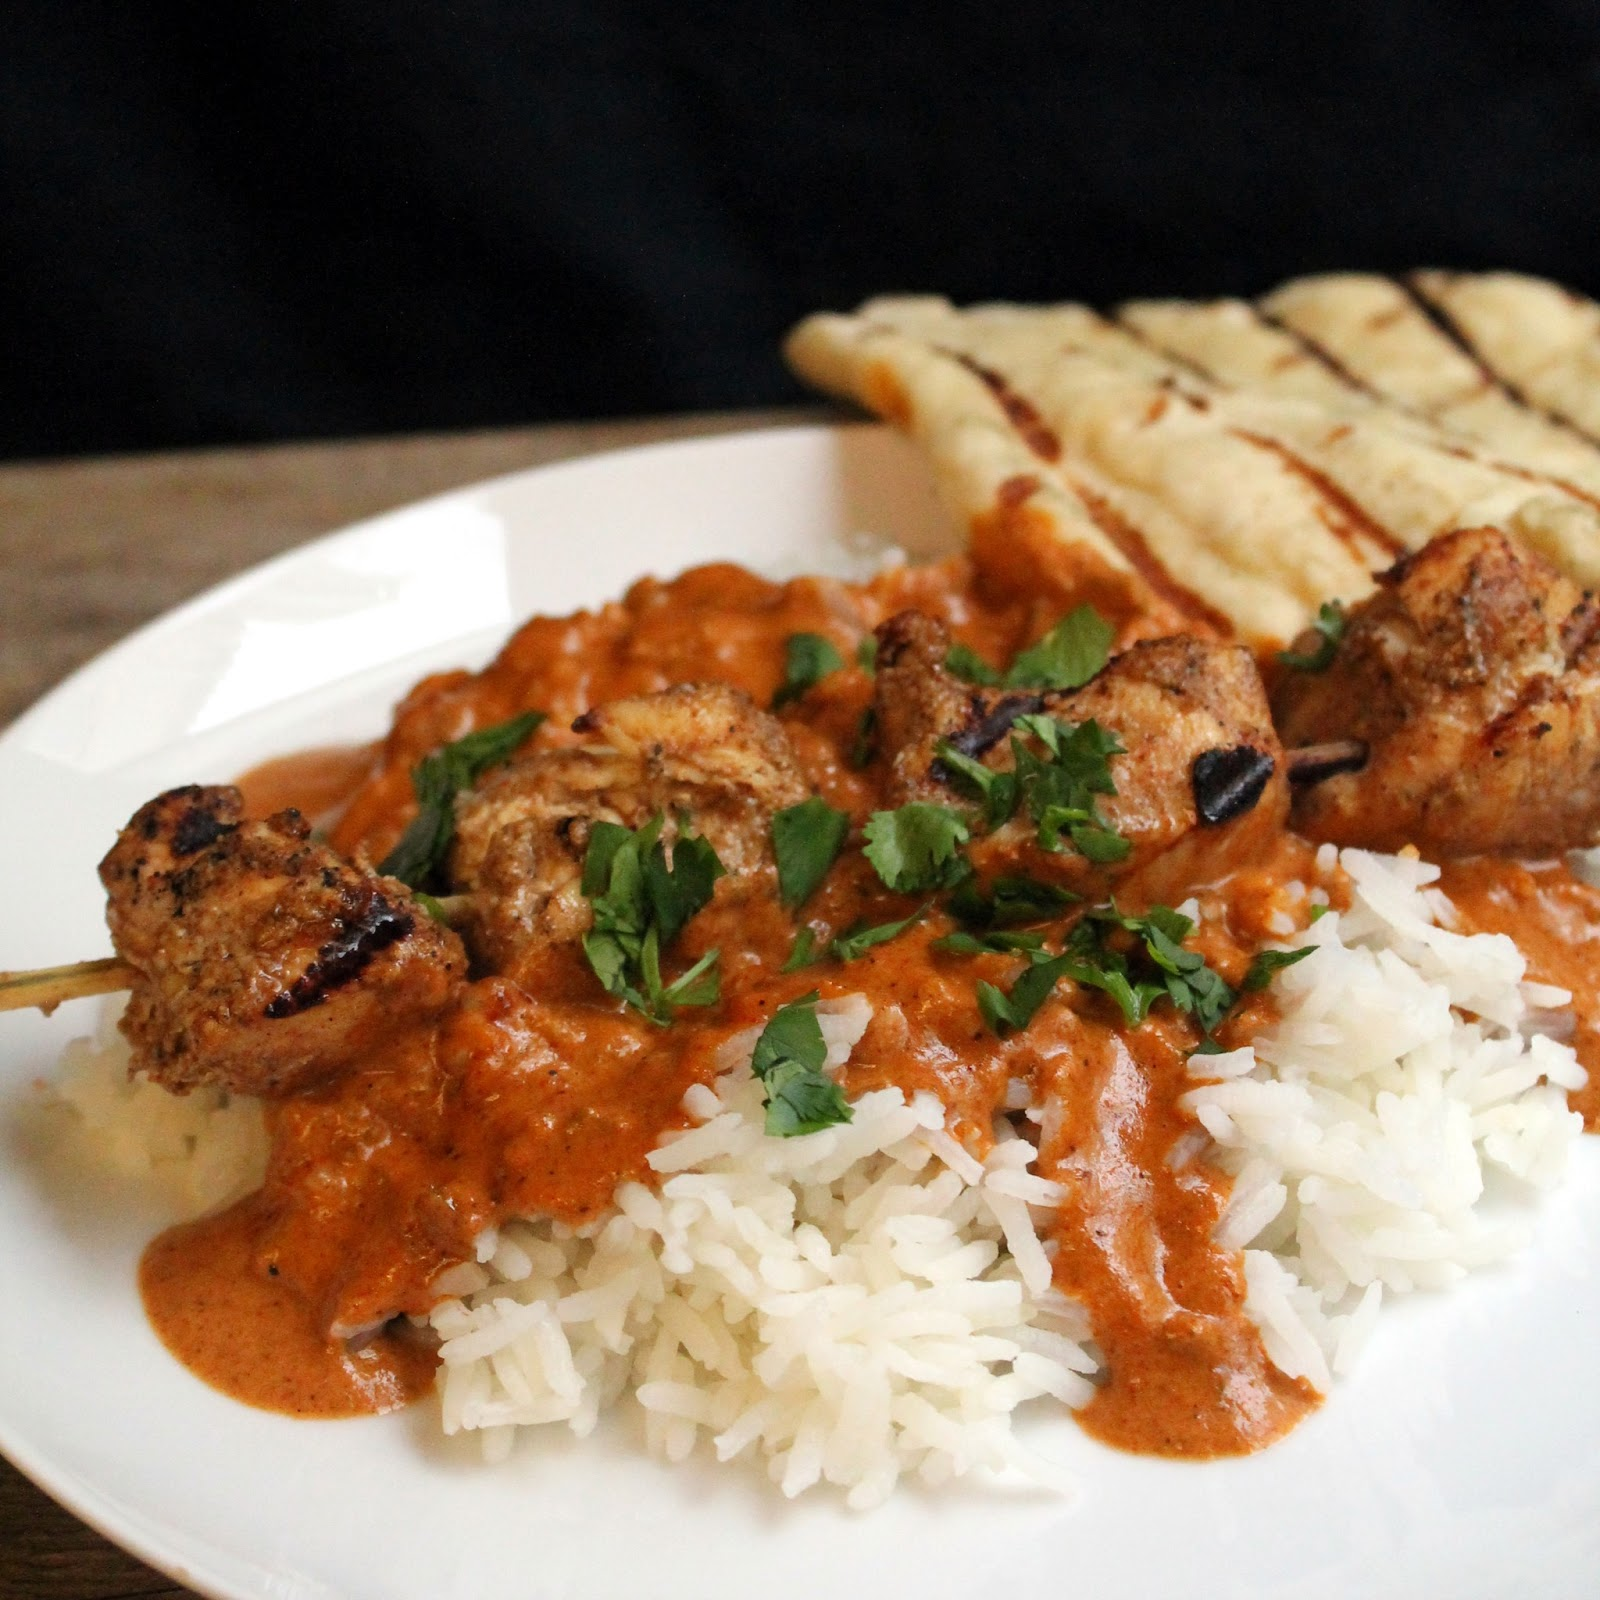 grilled chicken tikka masala